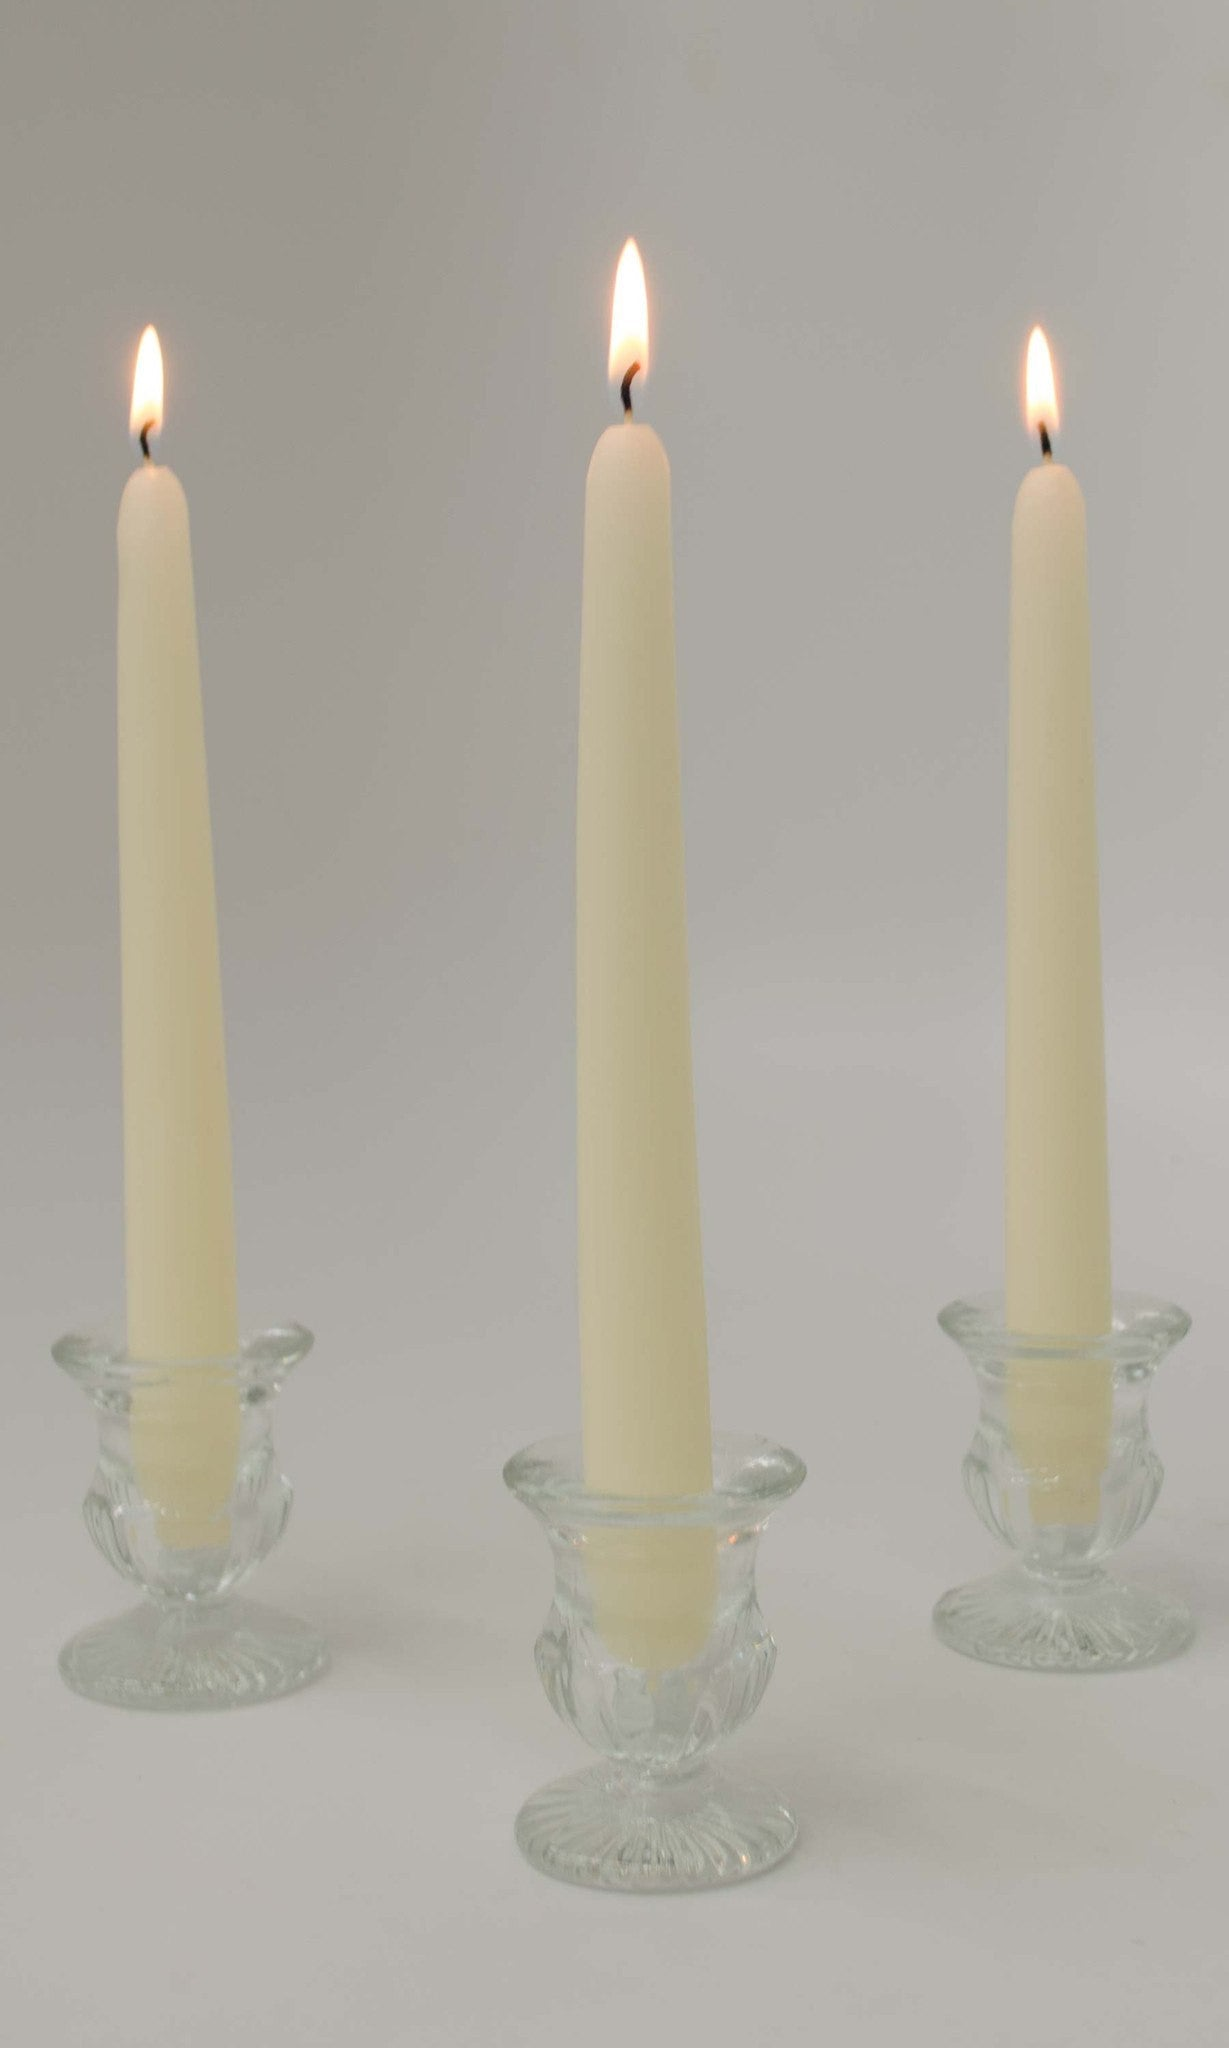 White 8inch Unscented Taper Candles (Case of 12) Candles Candlemart.com $ 5.00